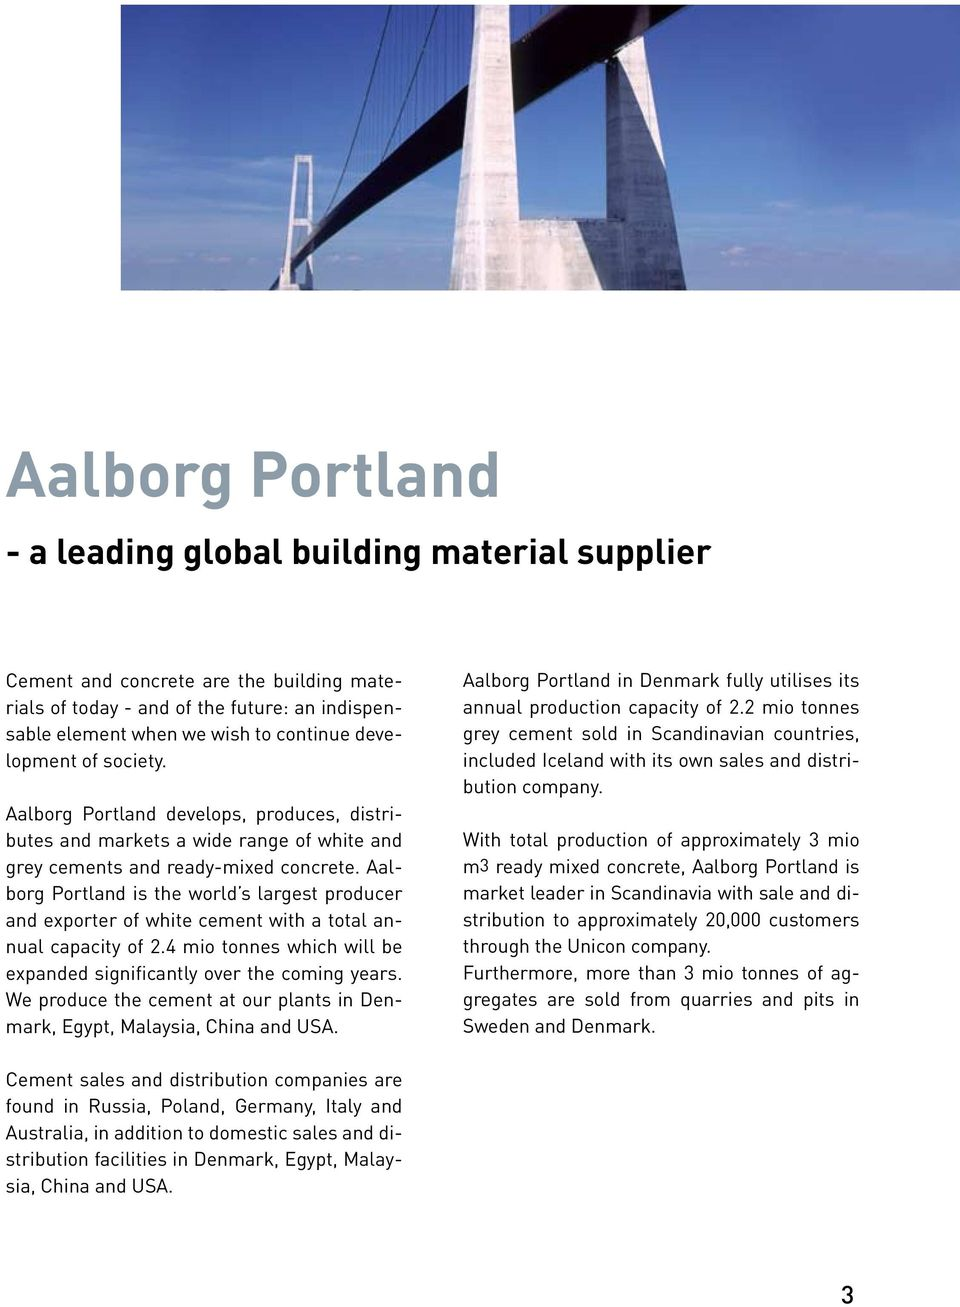 Aalborg Portland is the world s largest producer and exporter of white cement with a total annual capacity of 2.4 mio tonnes which will be expanded significantly over the coming years.